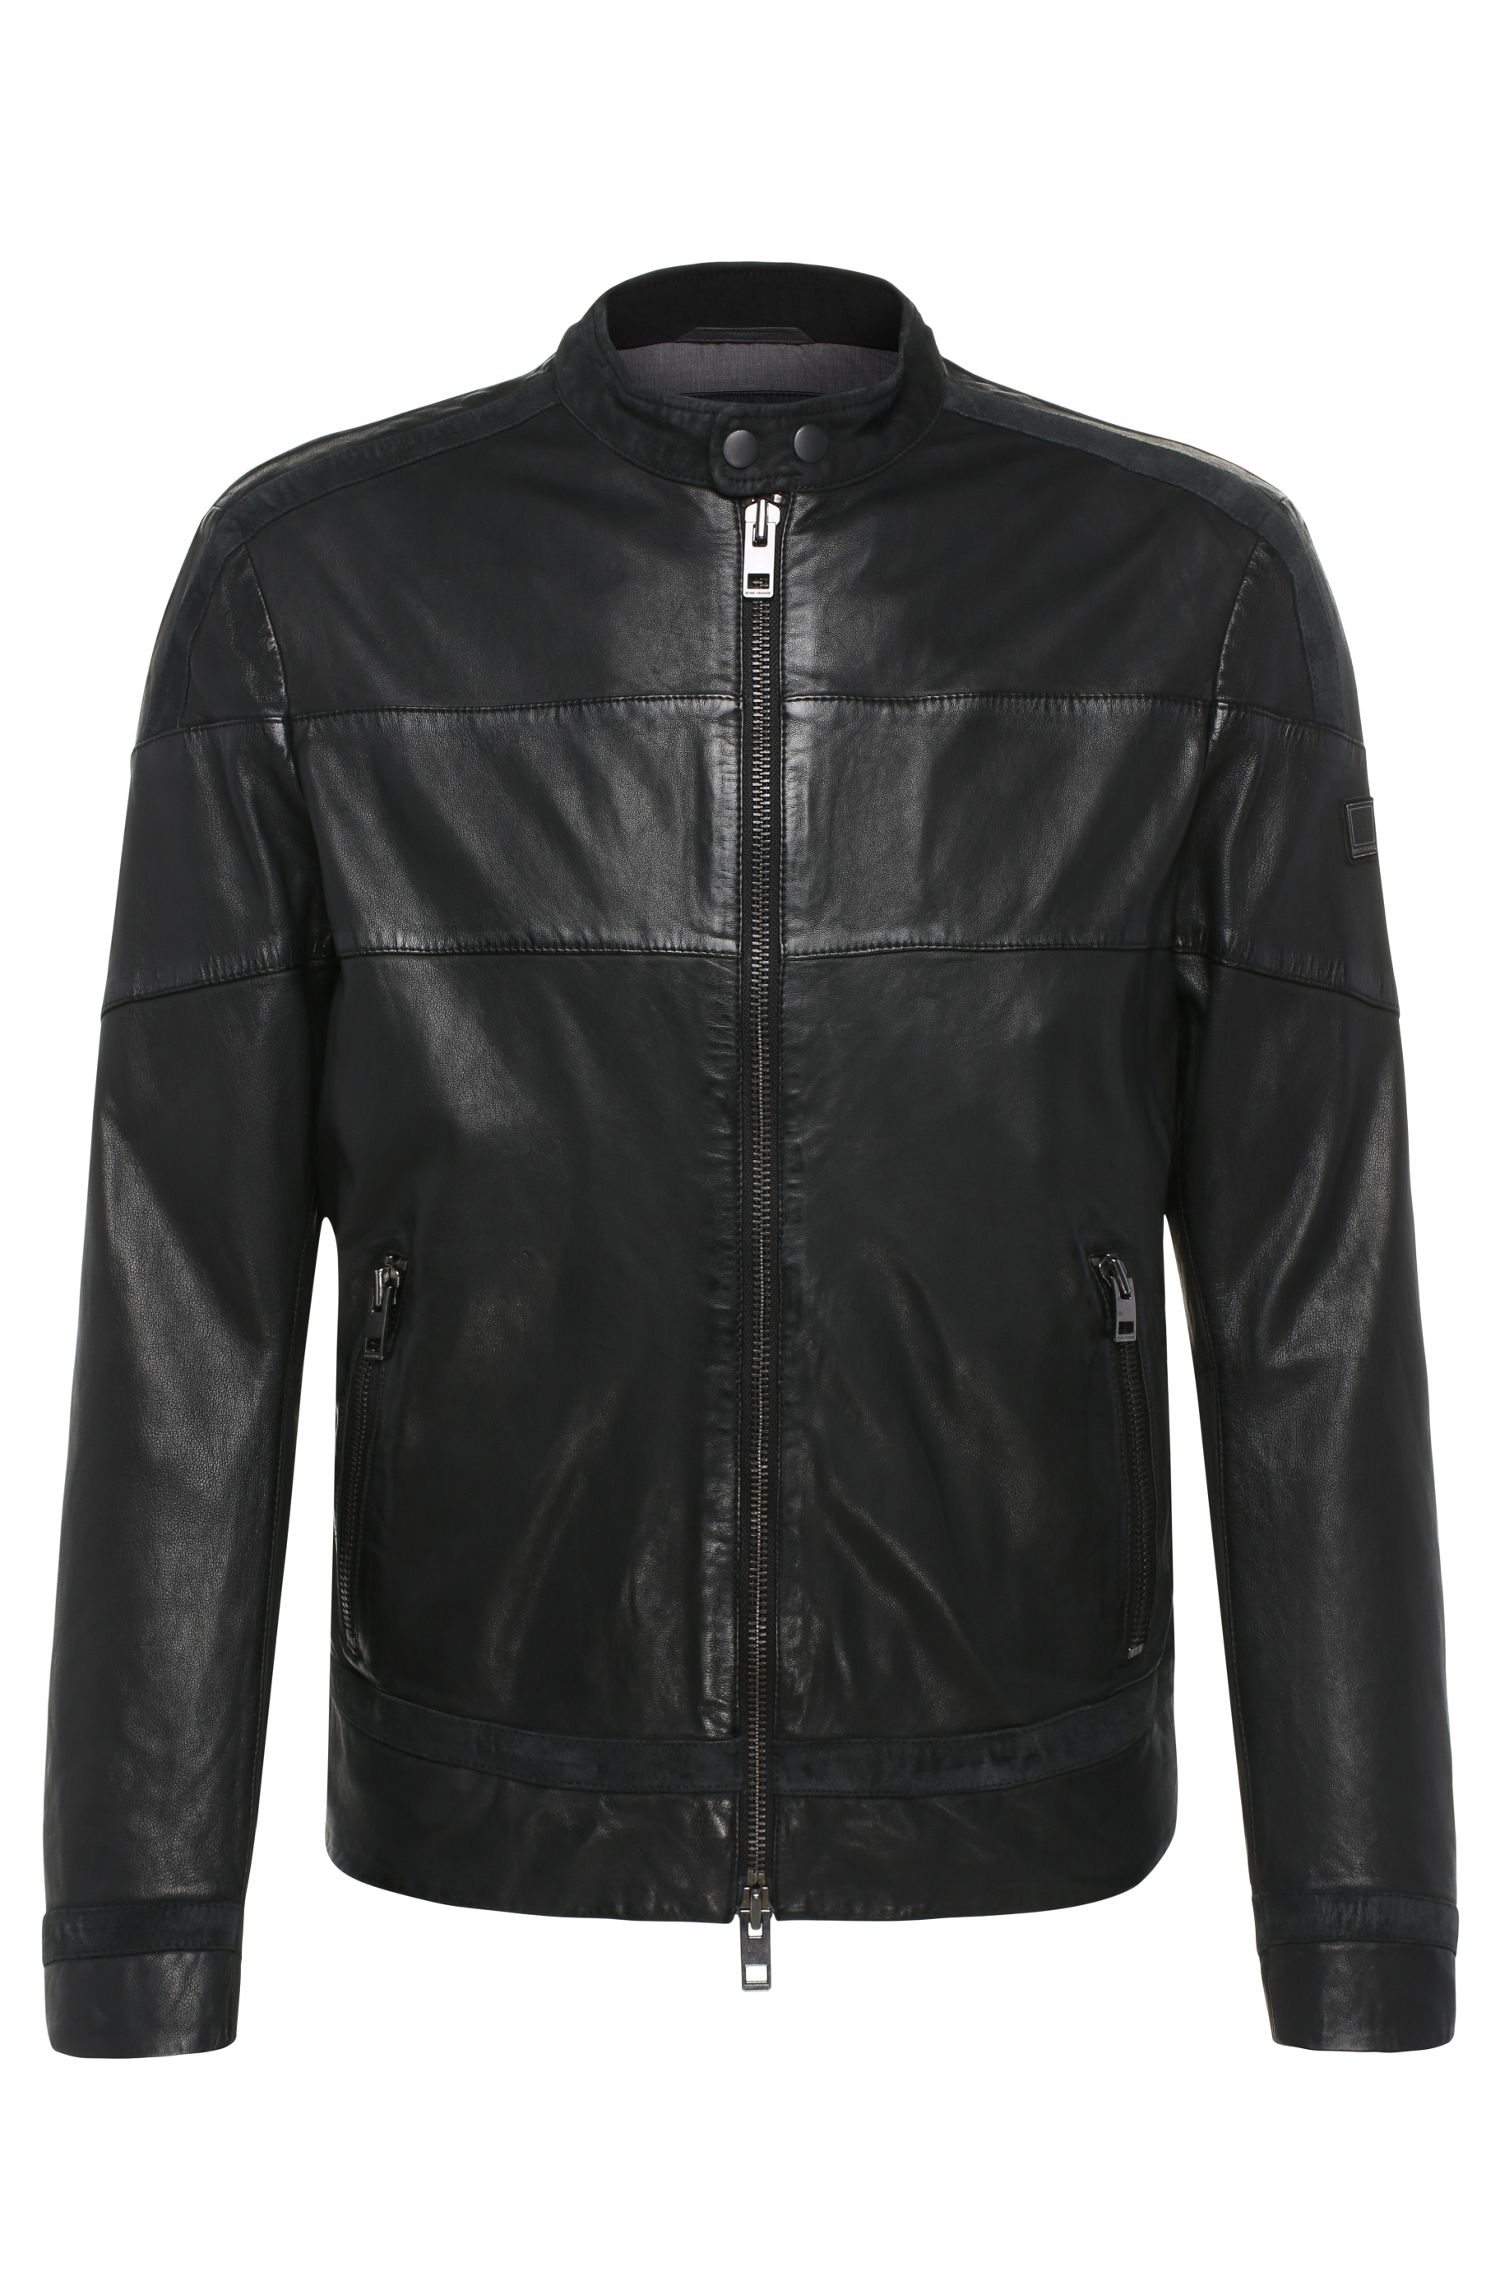 Sheepskin Paneled Biker Jacket | Jondro